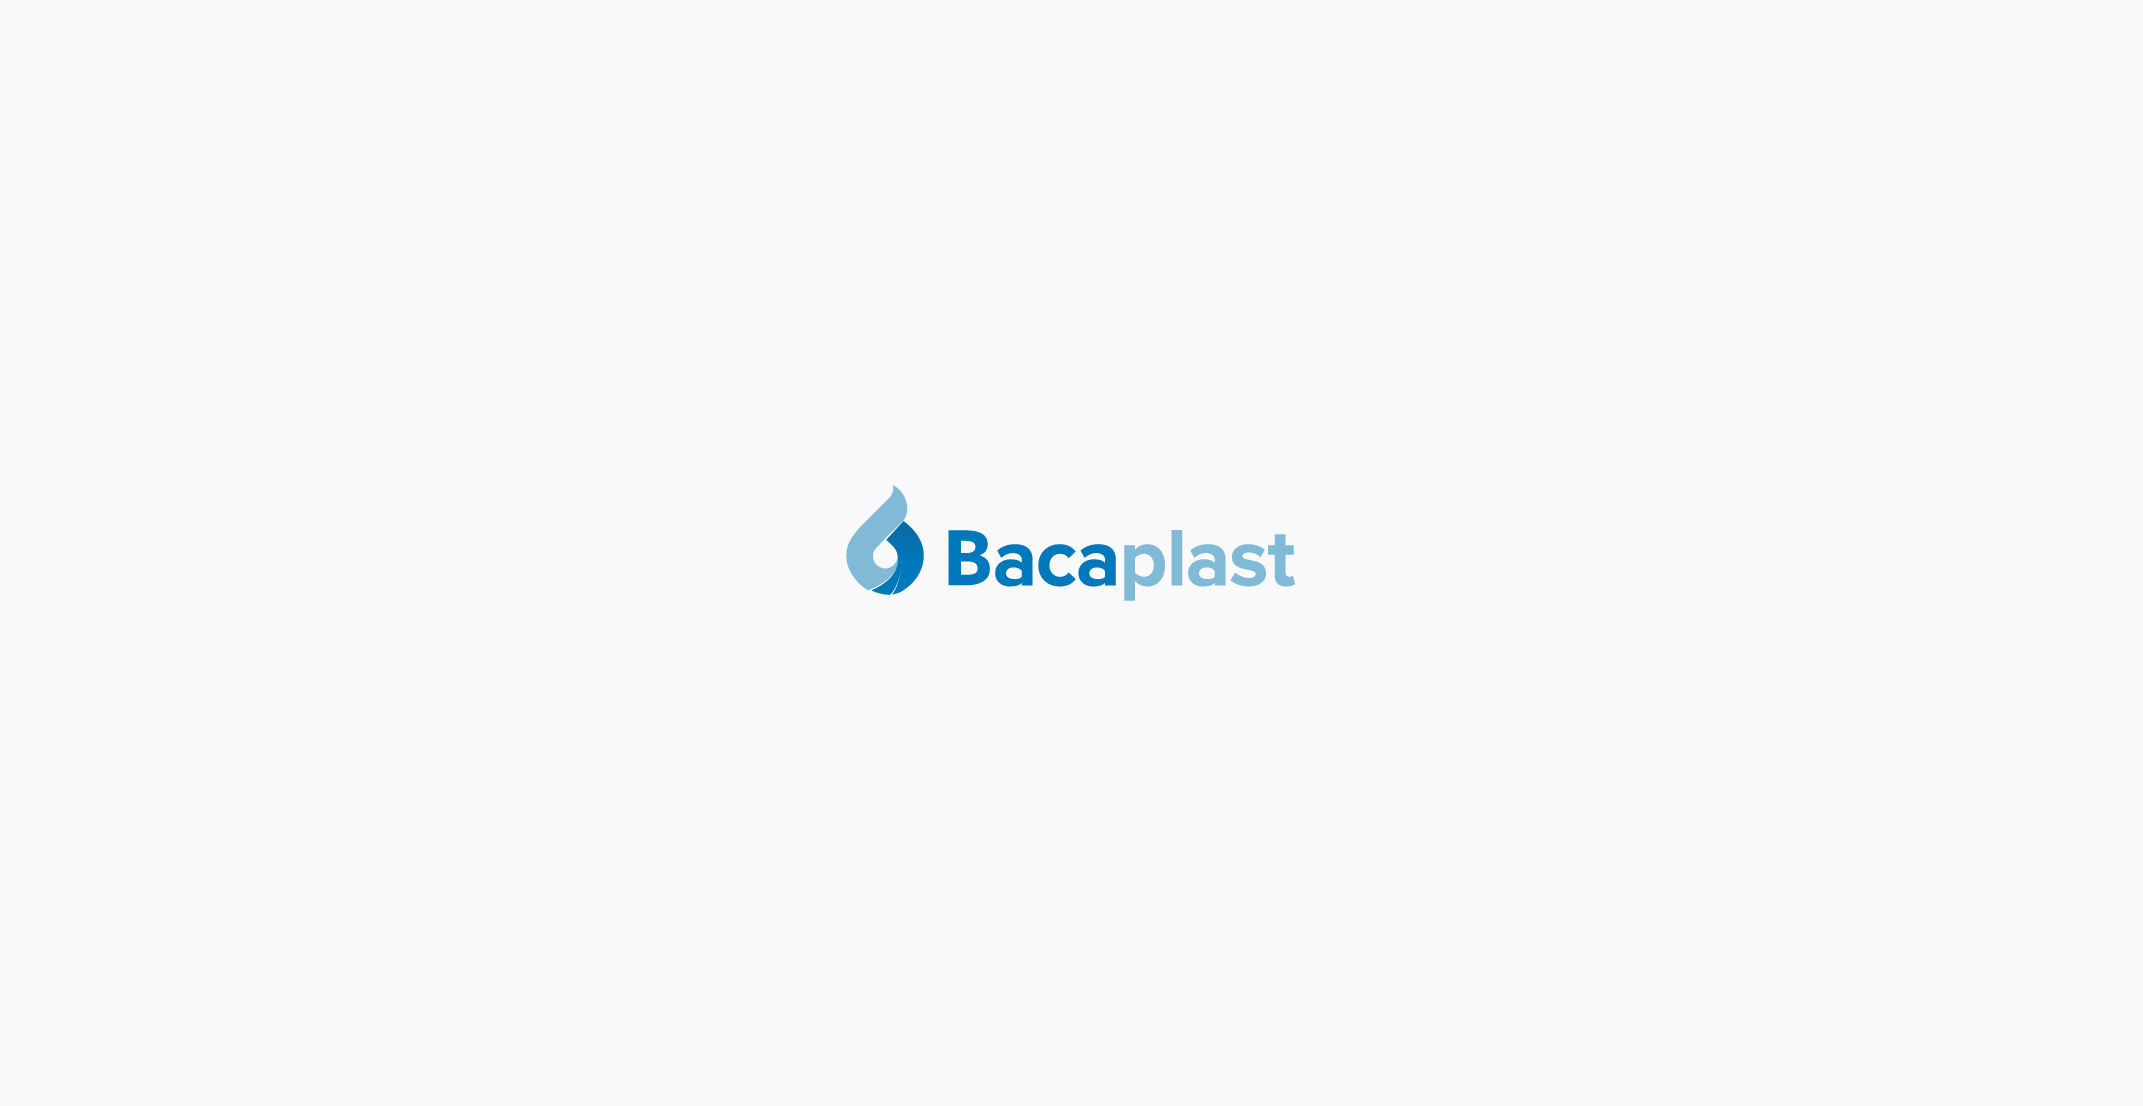 Logo designe for Bacaplast